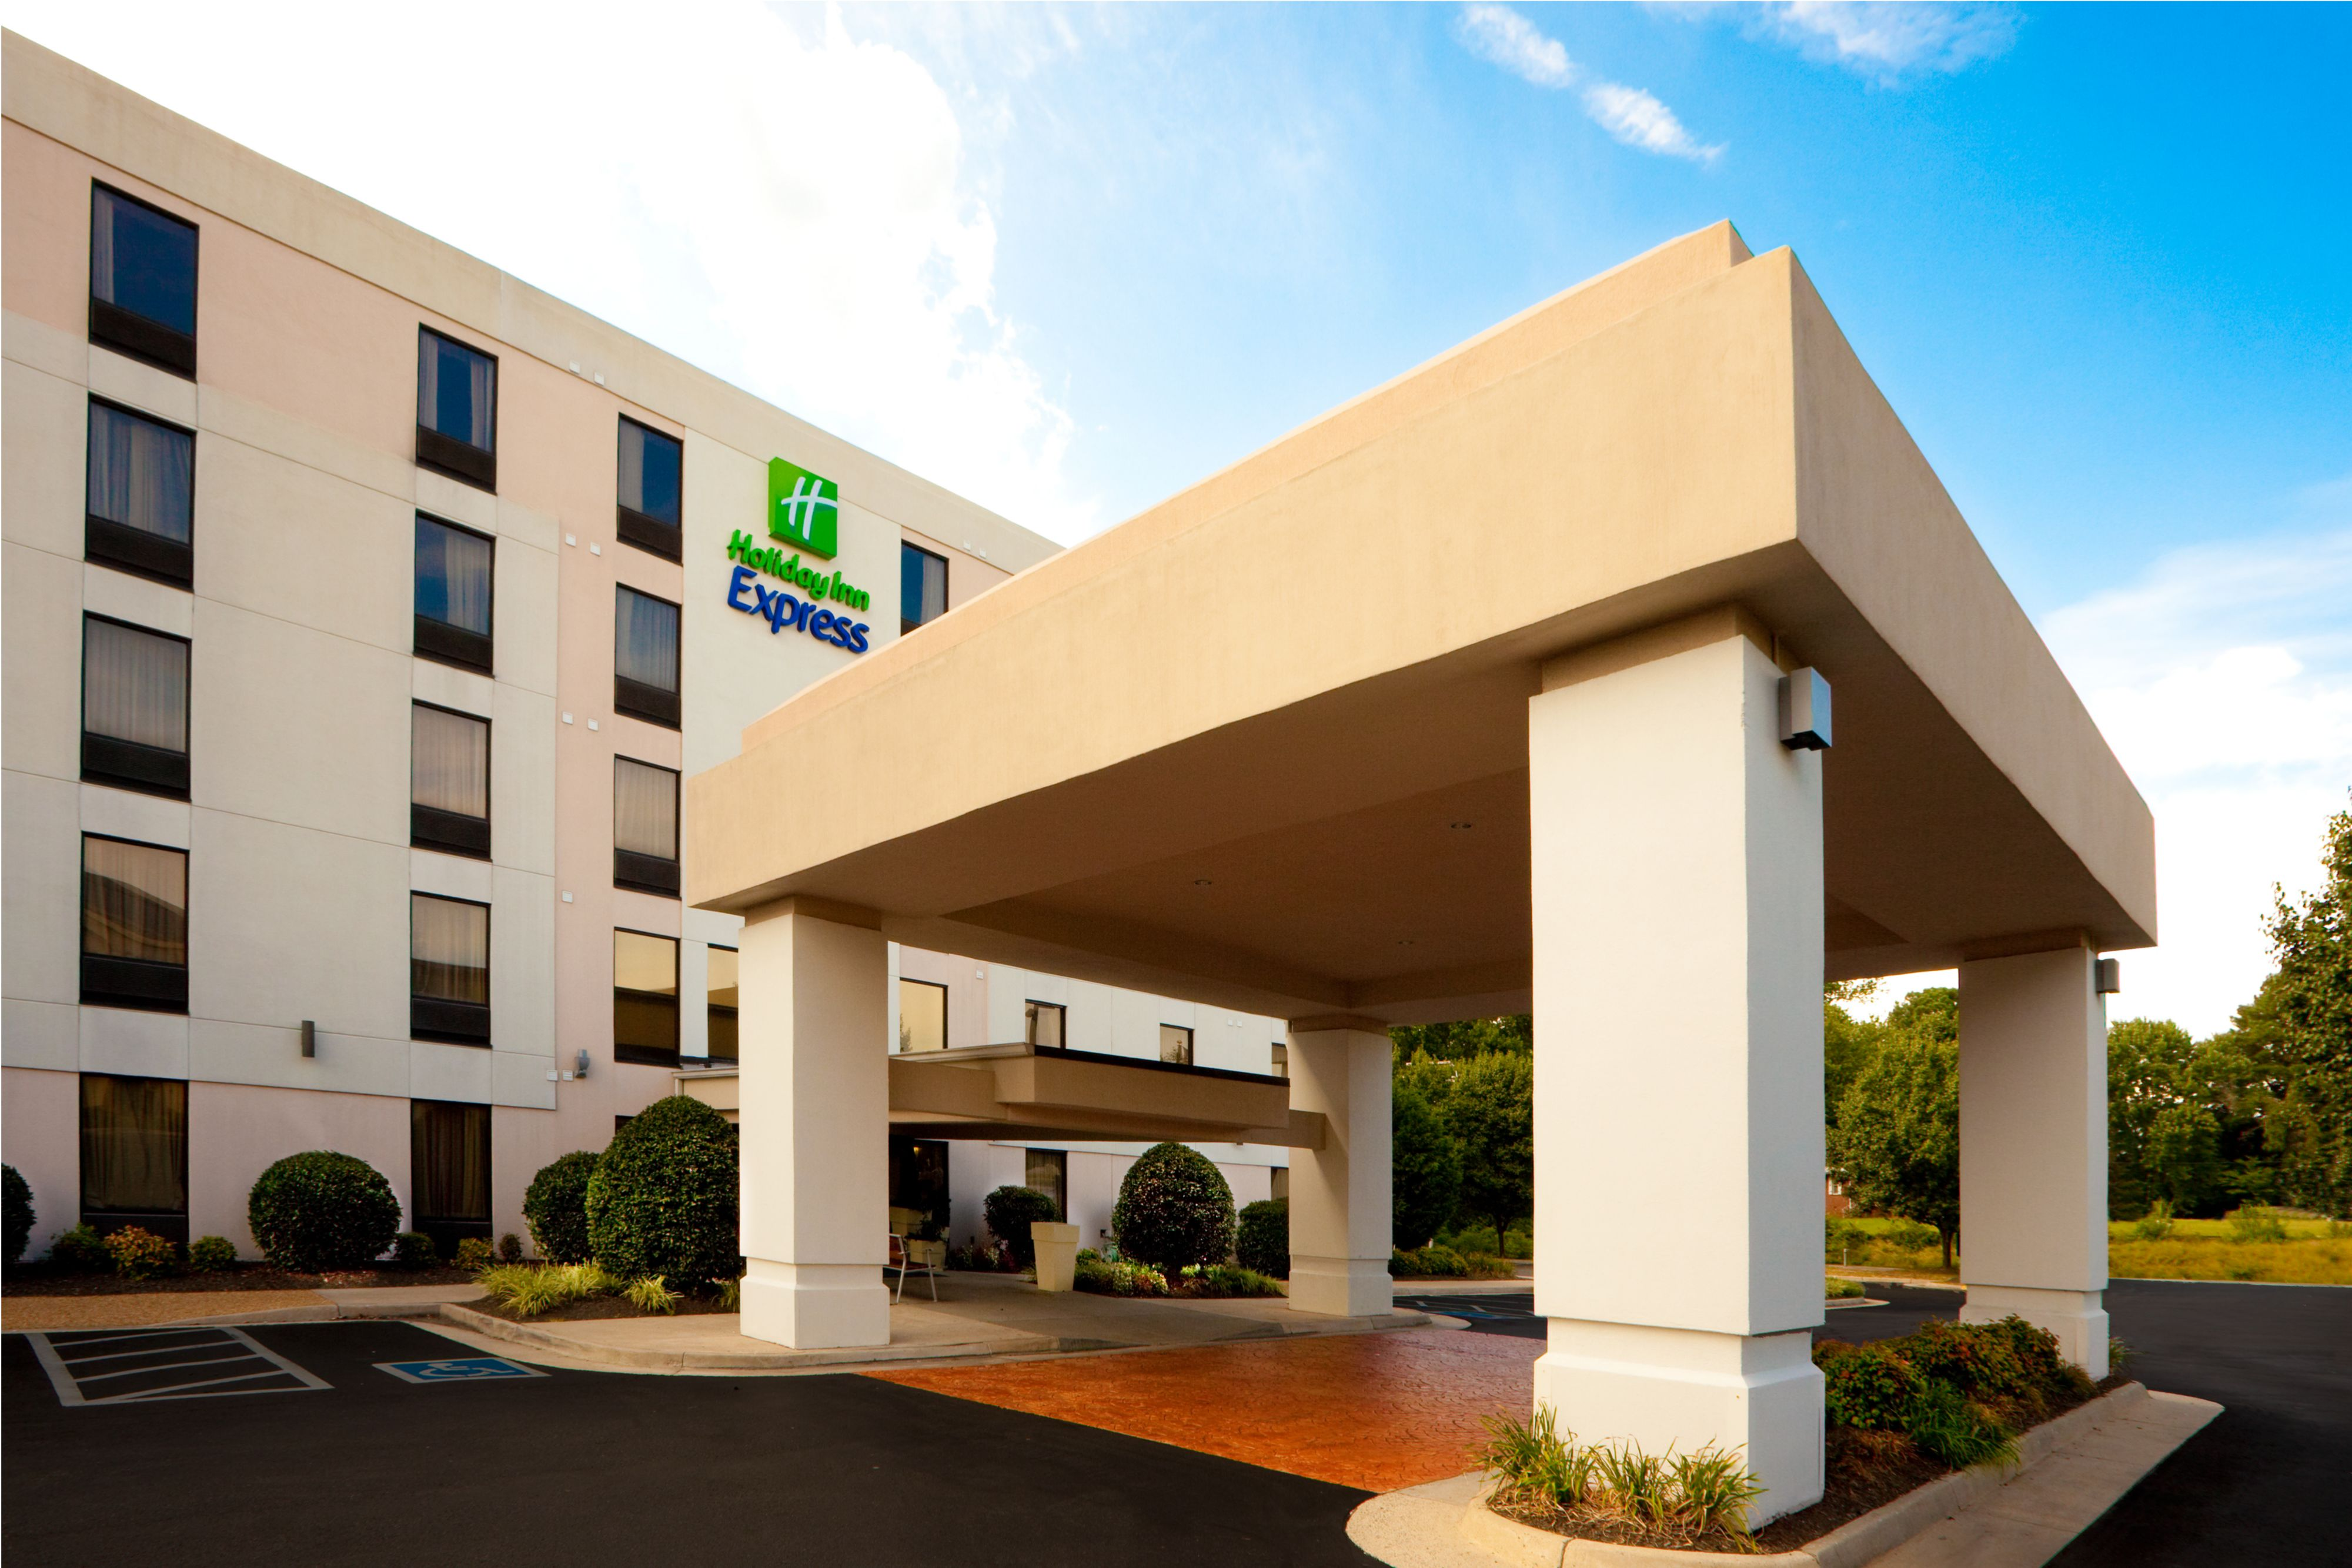 Hotels In Ashland Va Near I